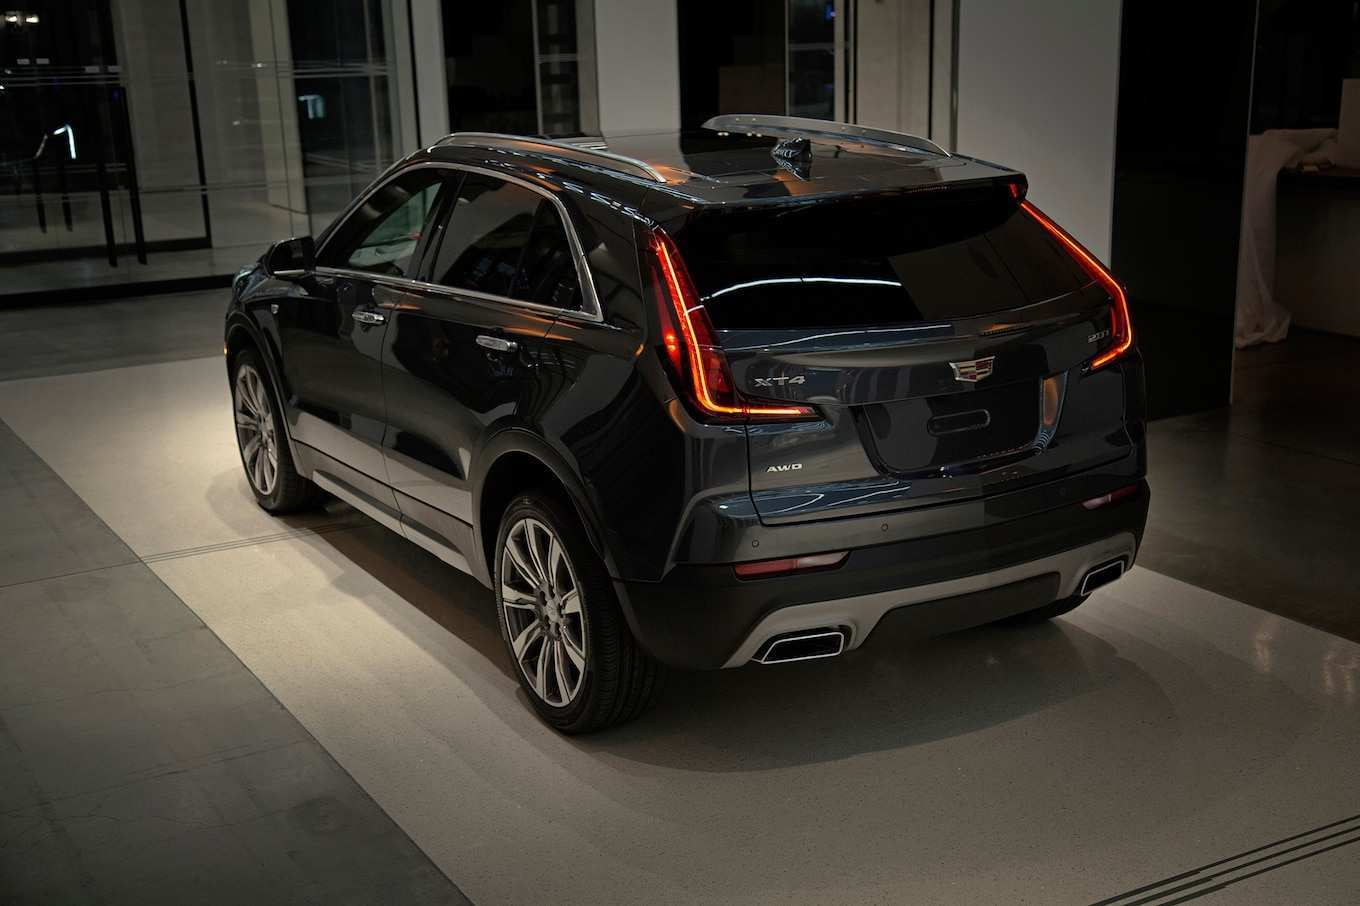 15 Best Review Cadillac 2019 Xt4 Price New Engine Spy Shoot with Cadillac 2019 Xt4 Price New Engine